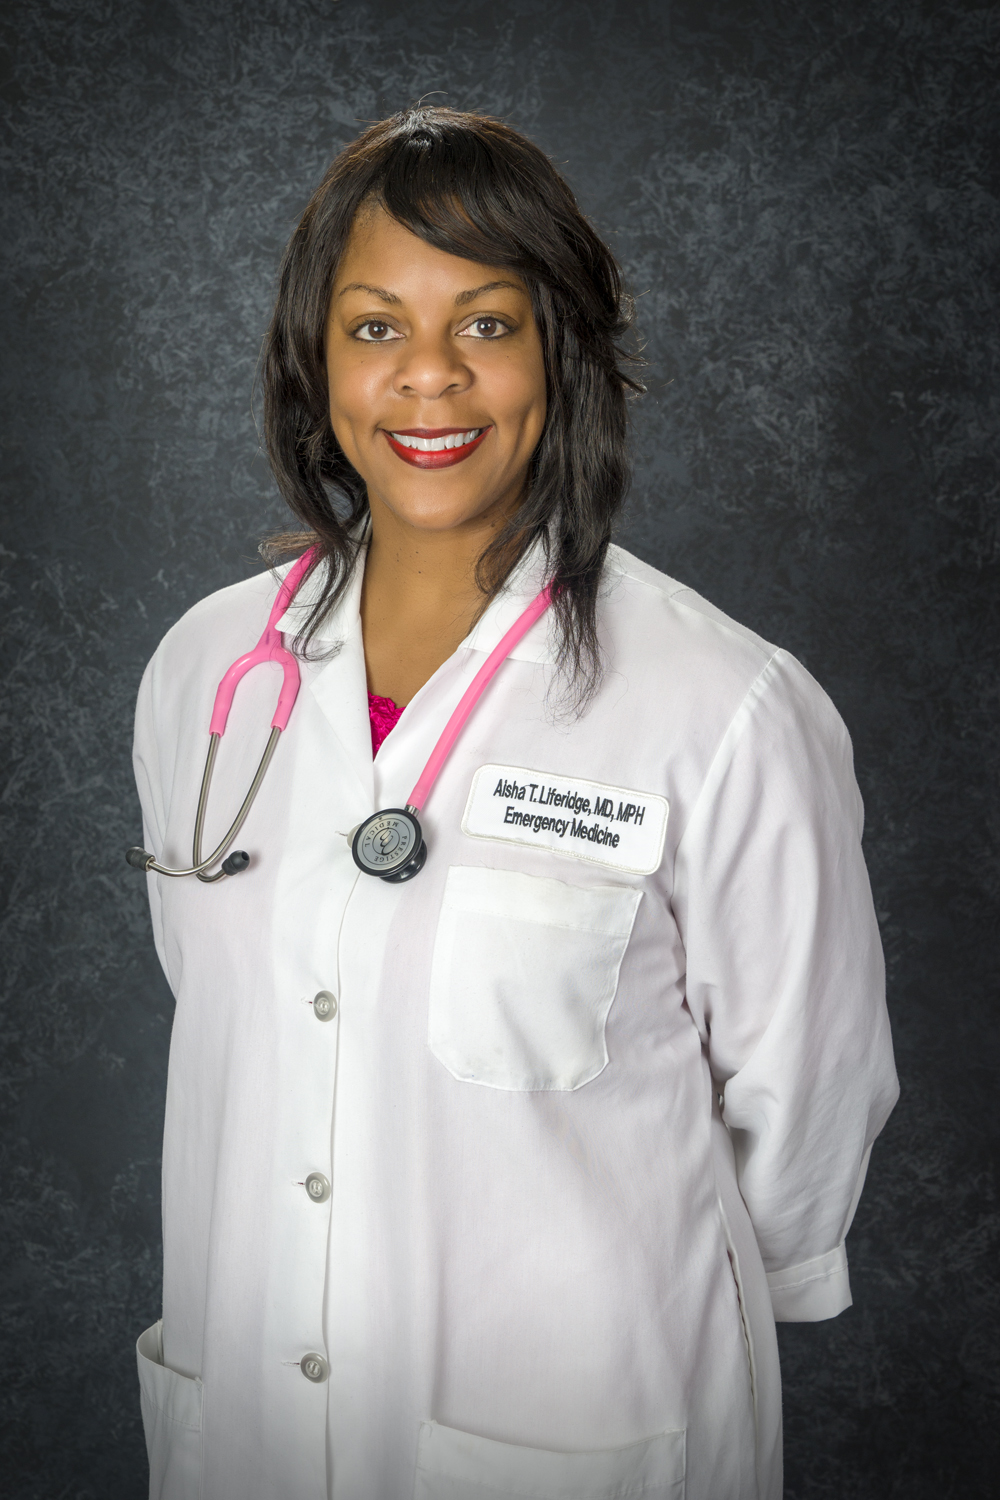 A. Liferidge -White Coat Photo